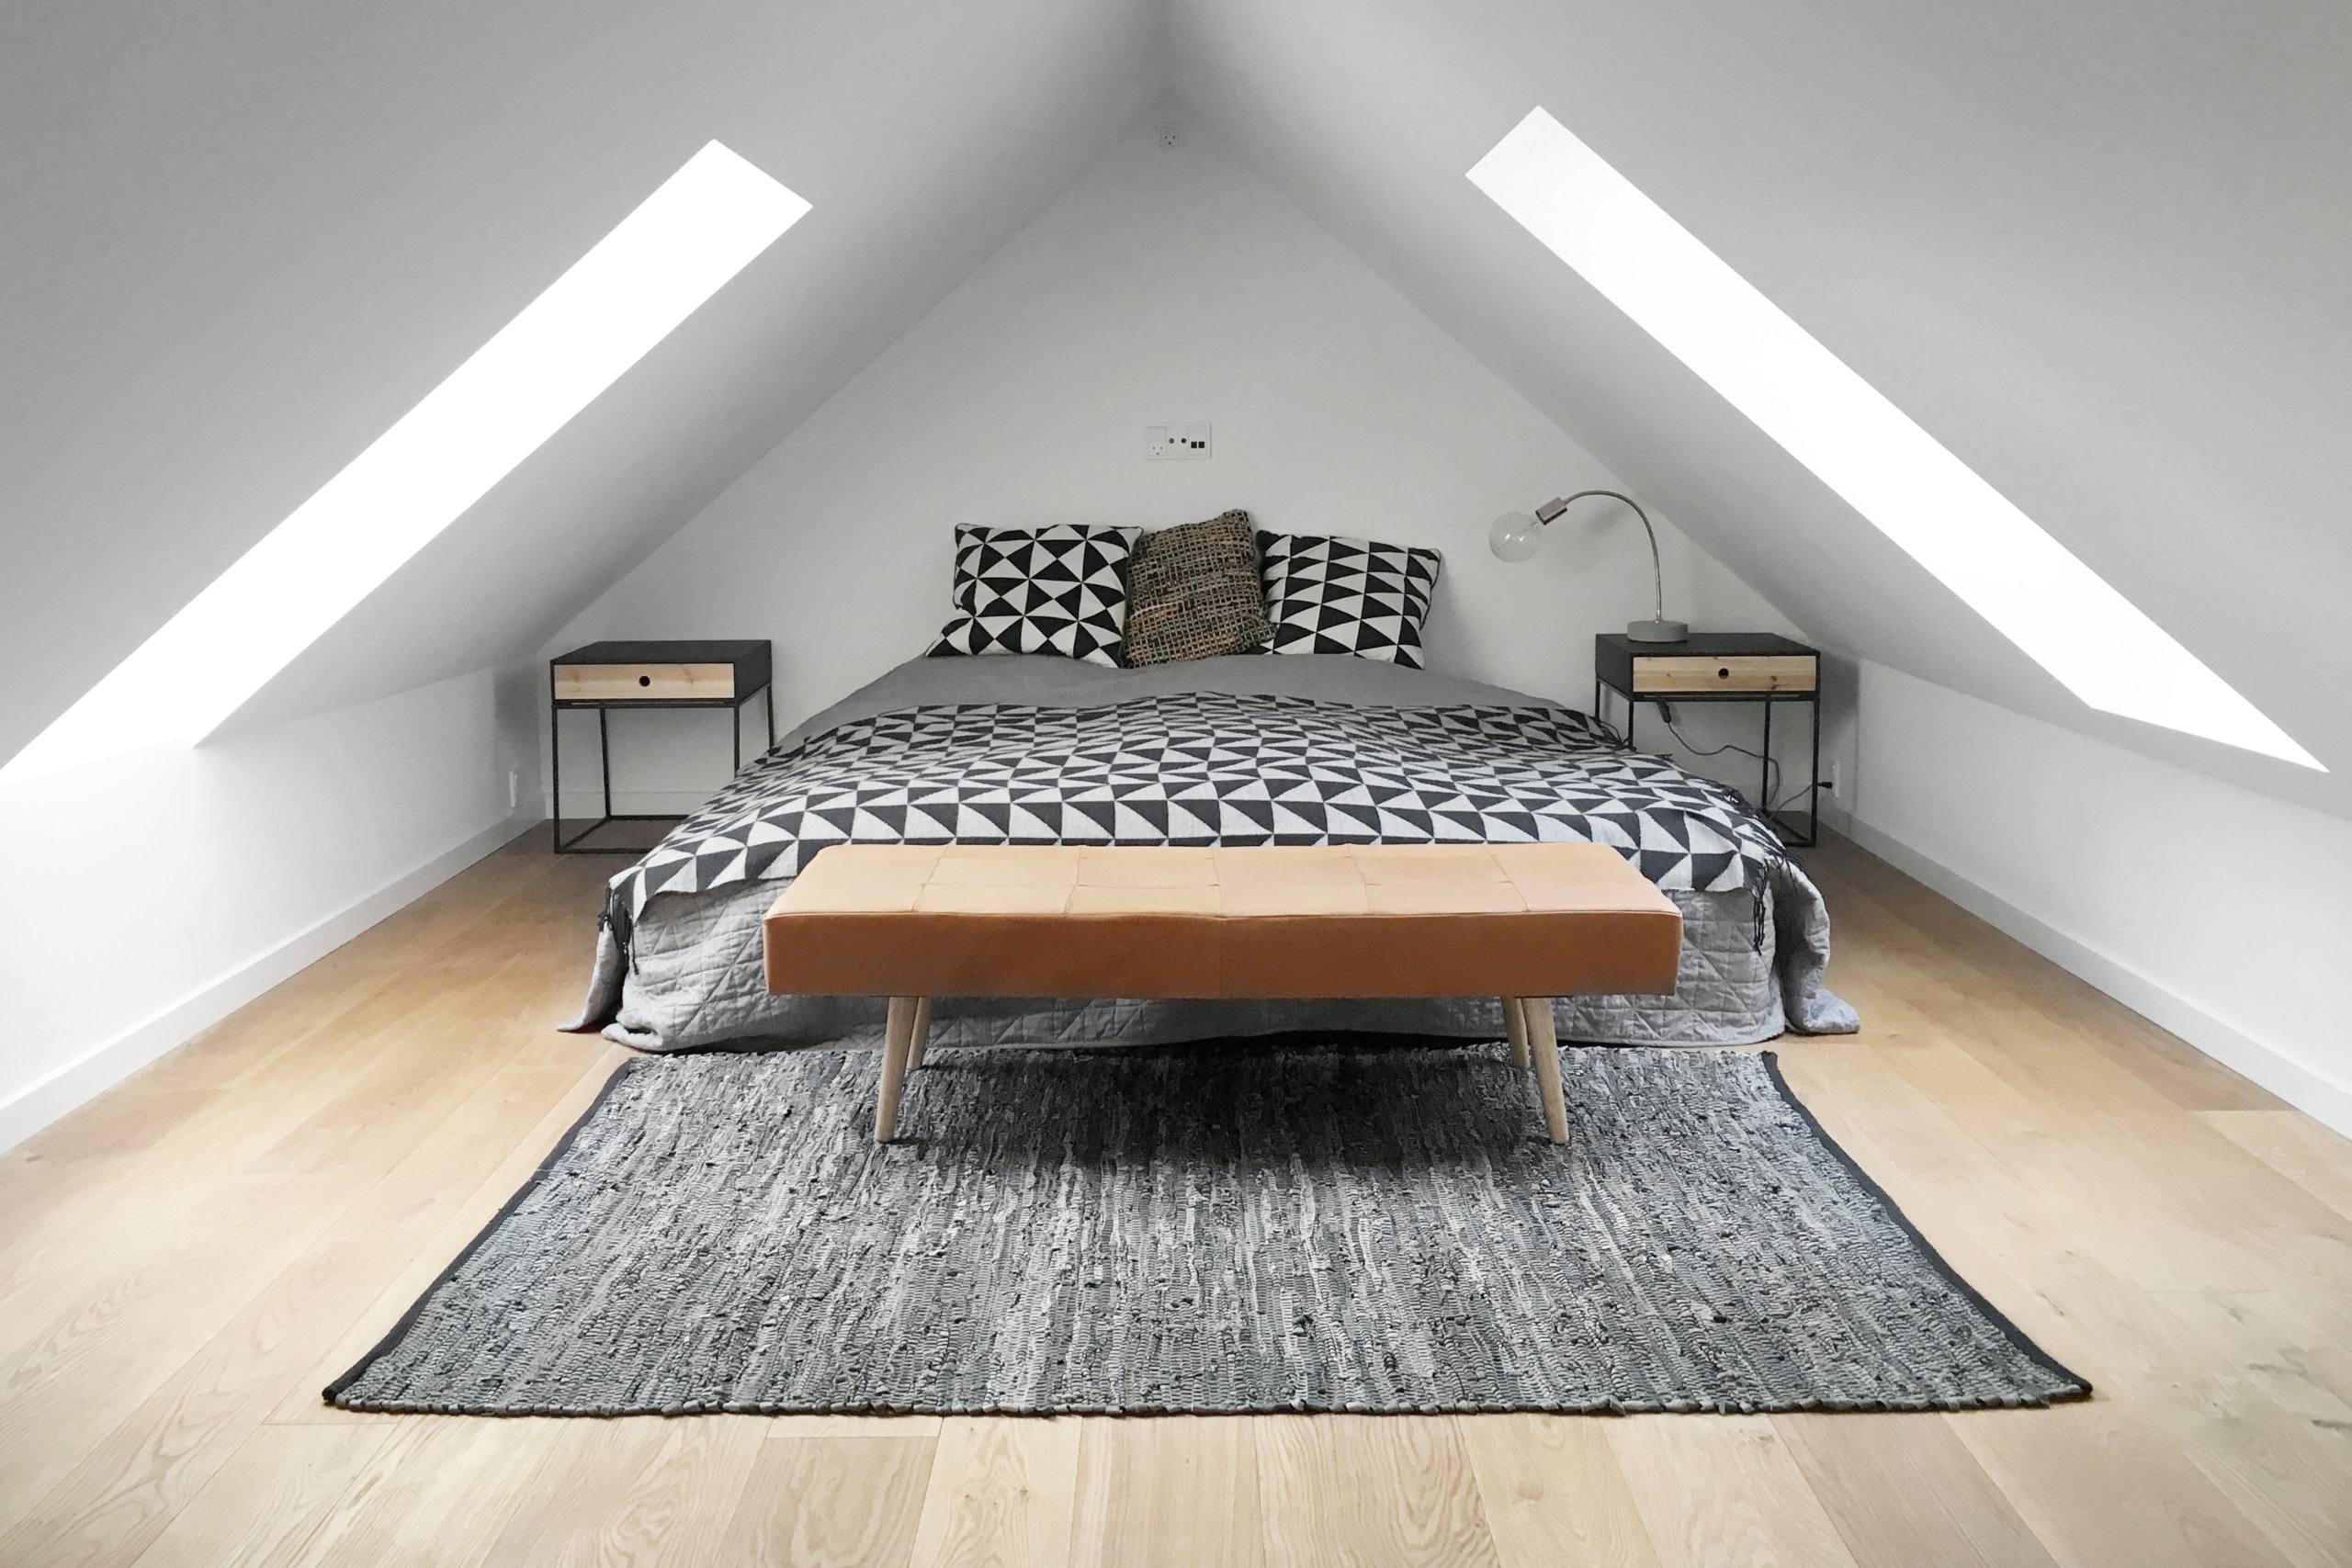 Attic-bedroom-with-ample-natural-light-and-bedding-that-adds-pattern-15532-scaled